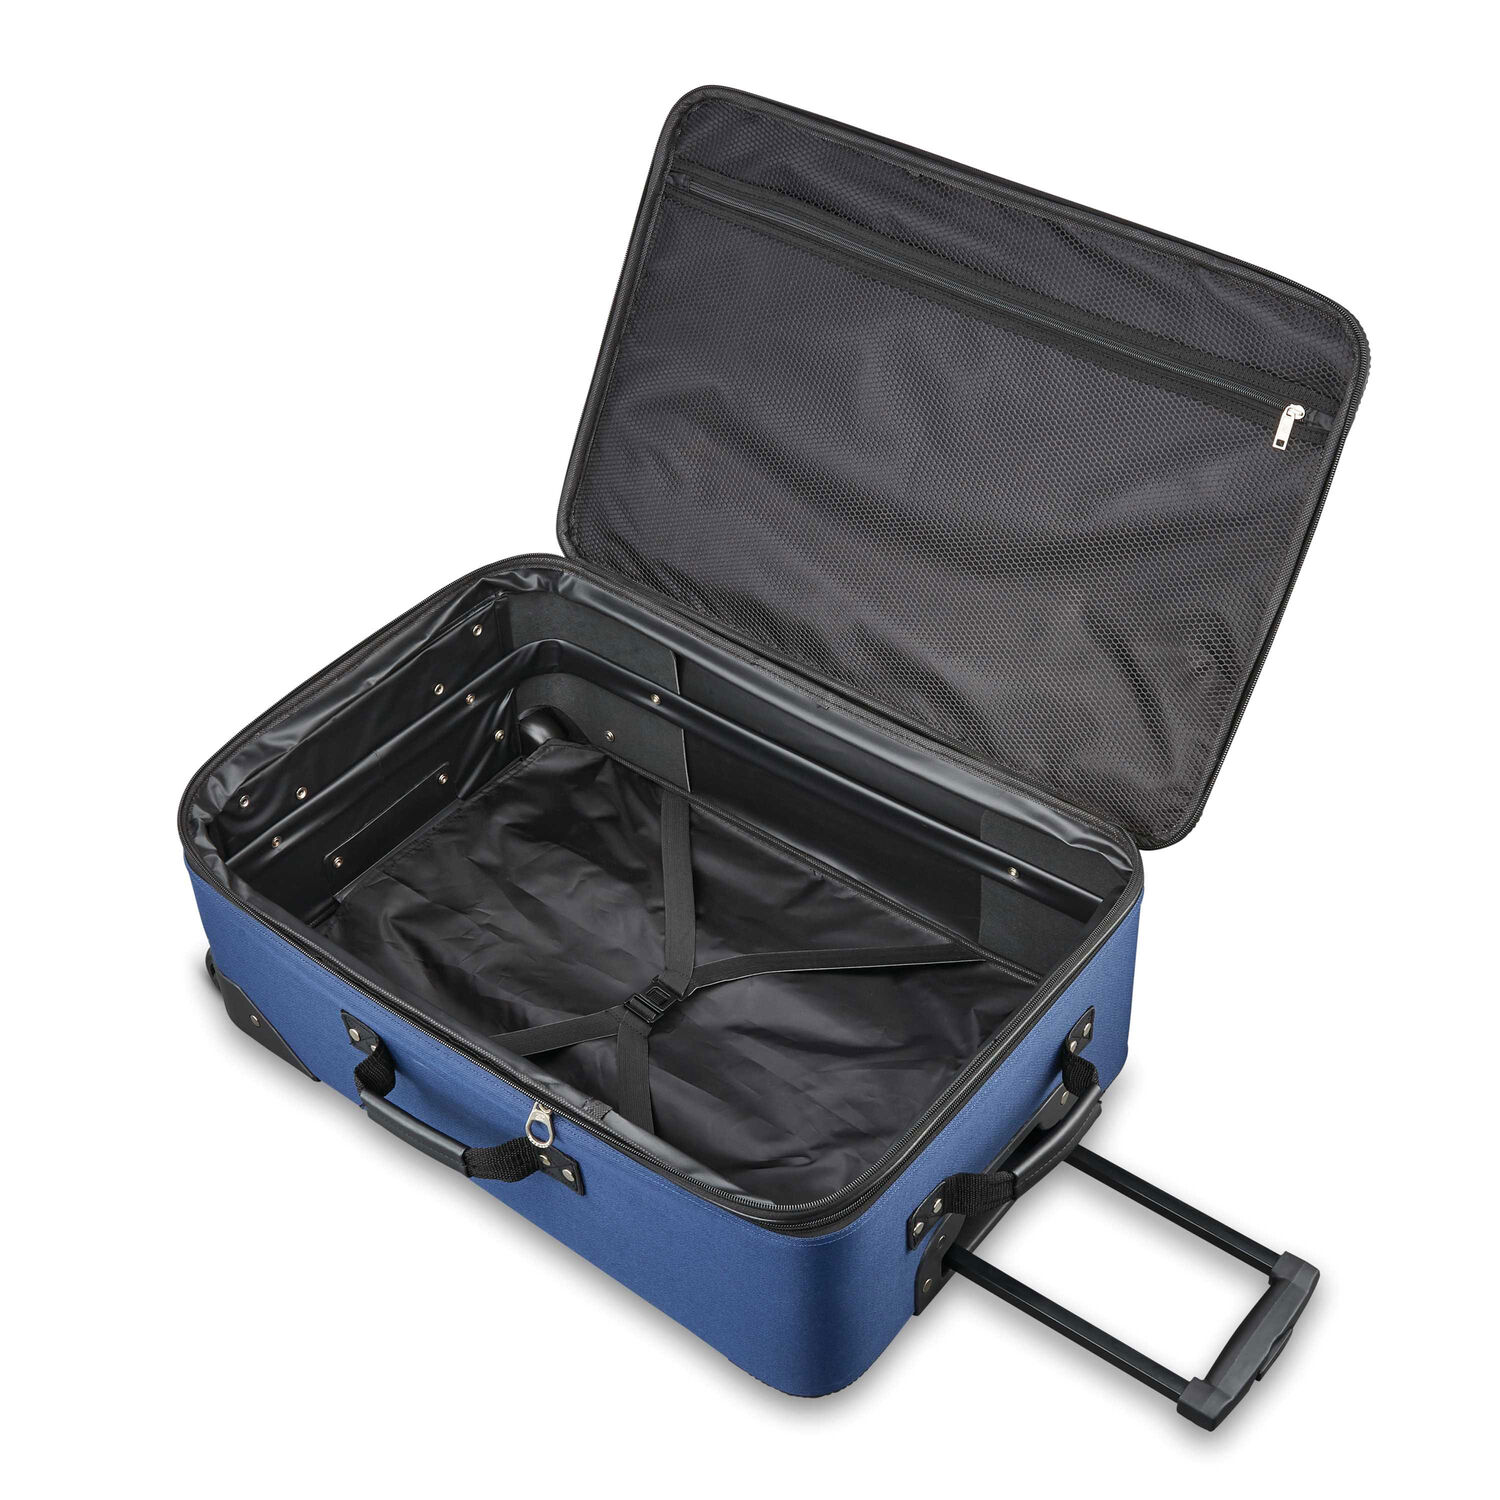 98f1a933e1 American Tourister Fieldbrook XLT 4 Piece Set in the color Navy.